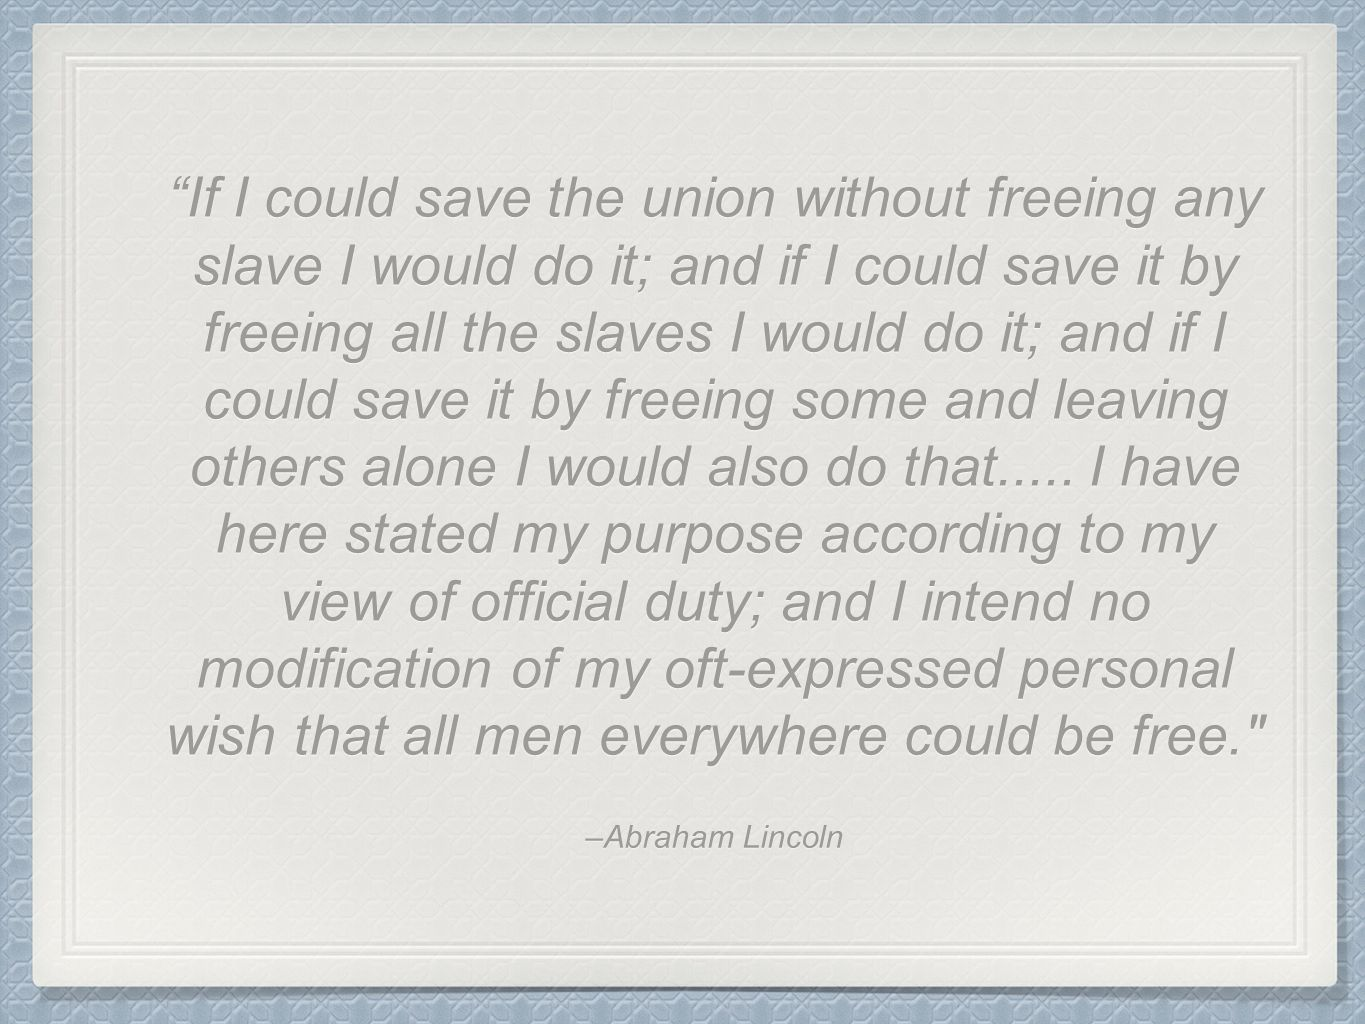 If I could save the union without freeing any slave I would do it; and if I could save it by freeing all the slaves I would do it; and if I could save it by freeing some and leaving others alone I would also do that..... I have here stated my purpose according to my view of official duty; and I intend no modification of my oft-expressed personal wish that all men everywhere could be free.